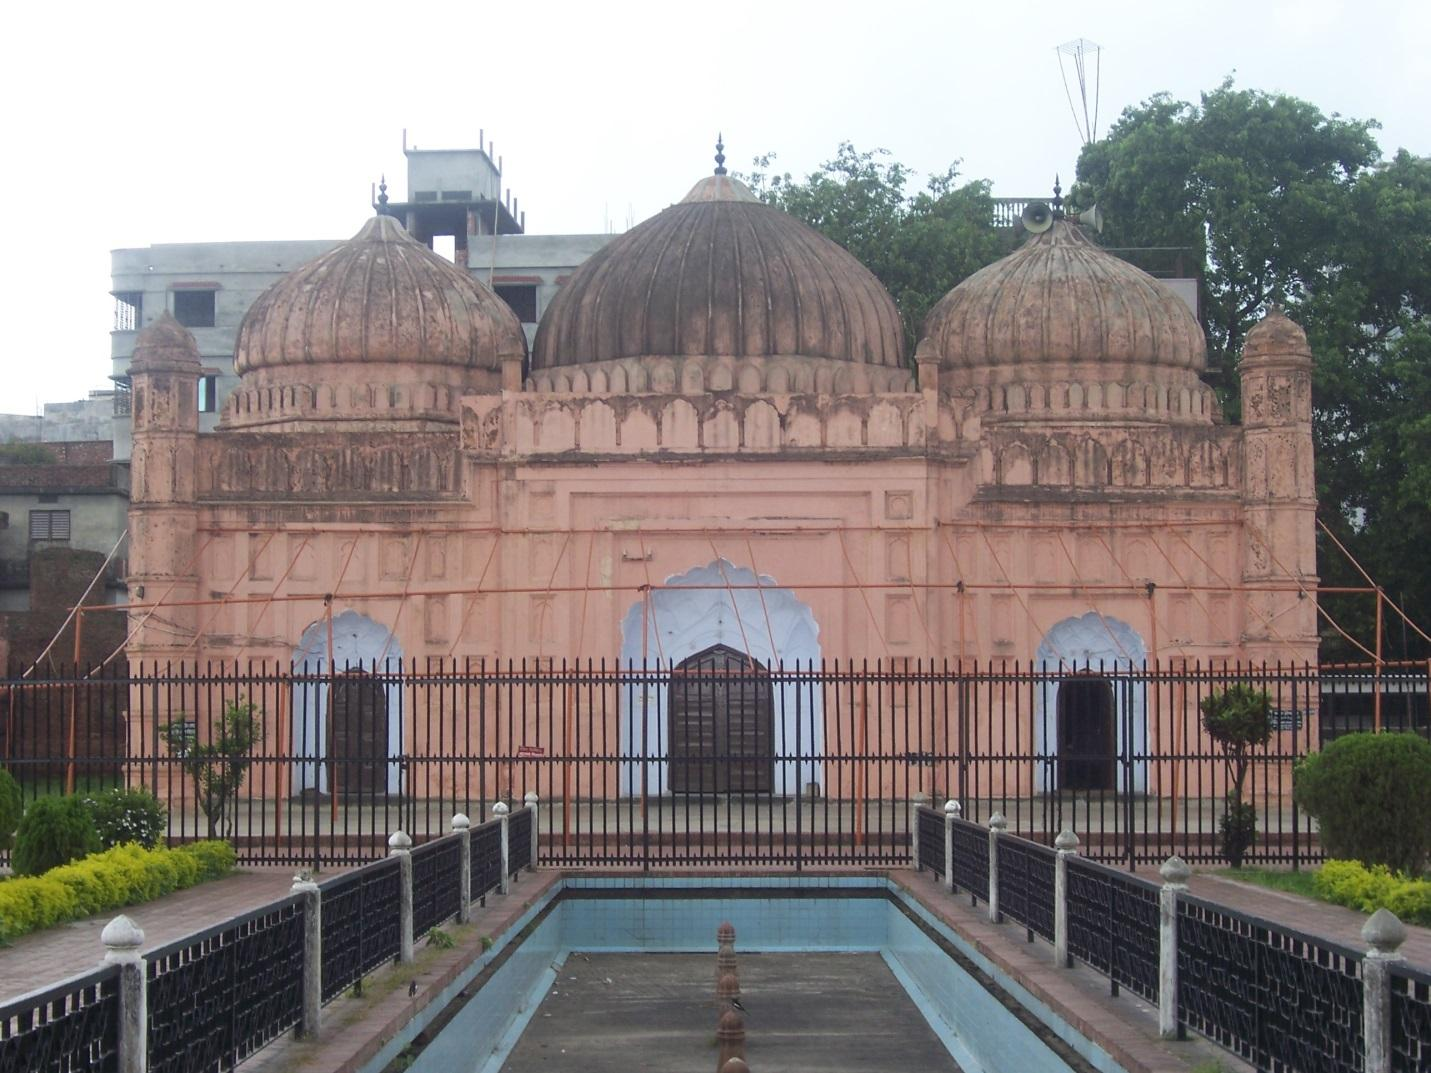 Mosque, Lalbagh Fort, Dhaka, Bangladesh